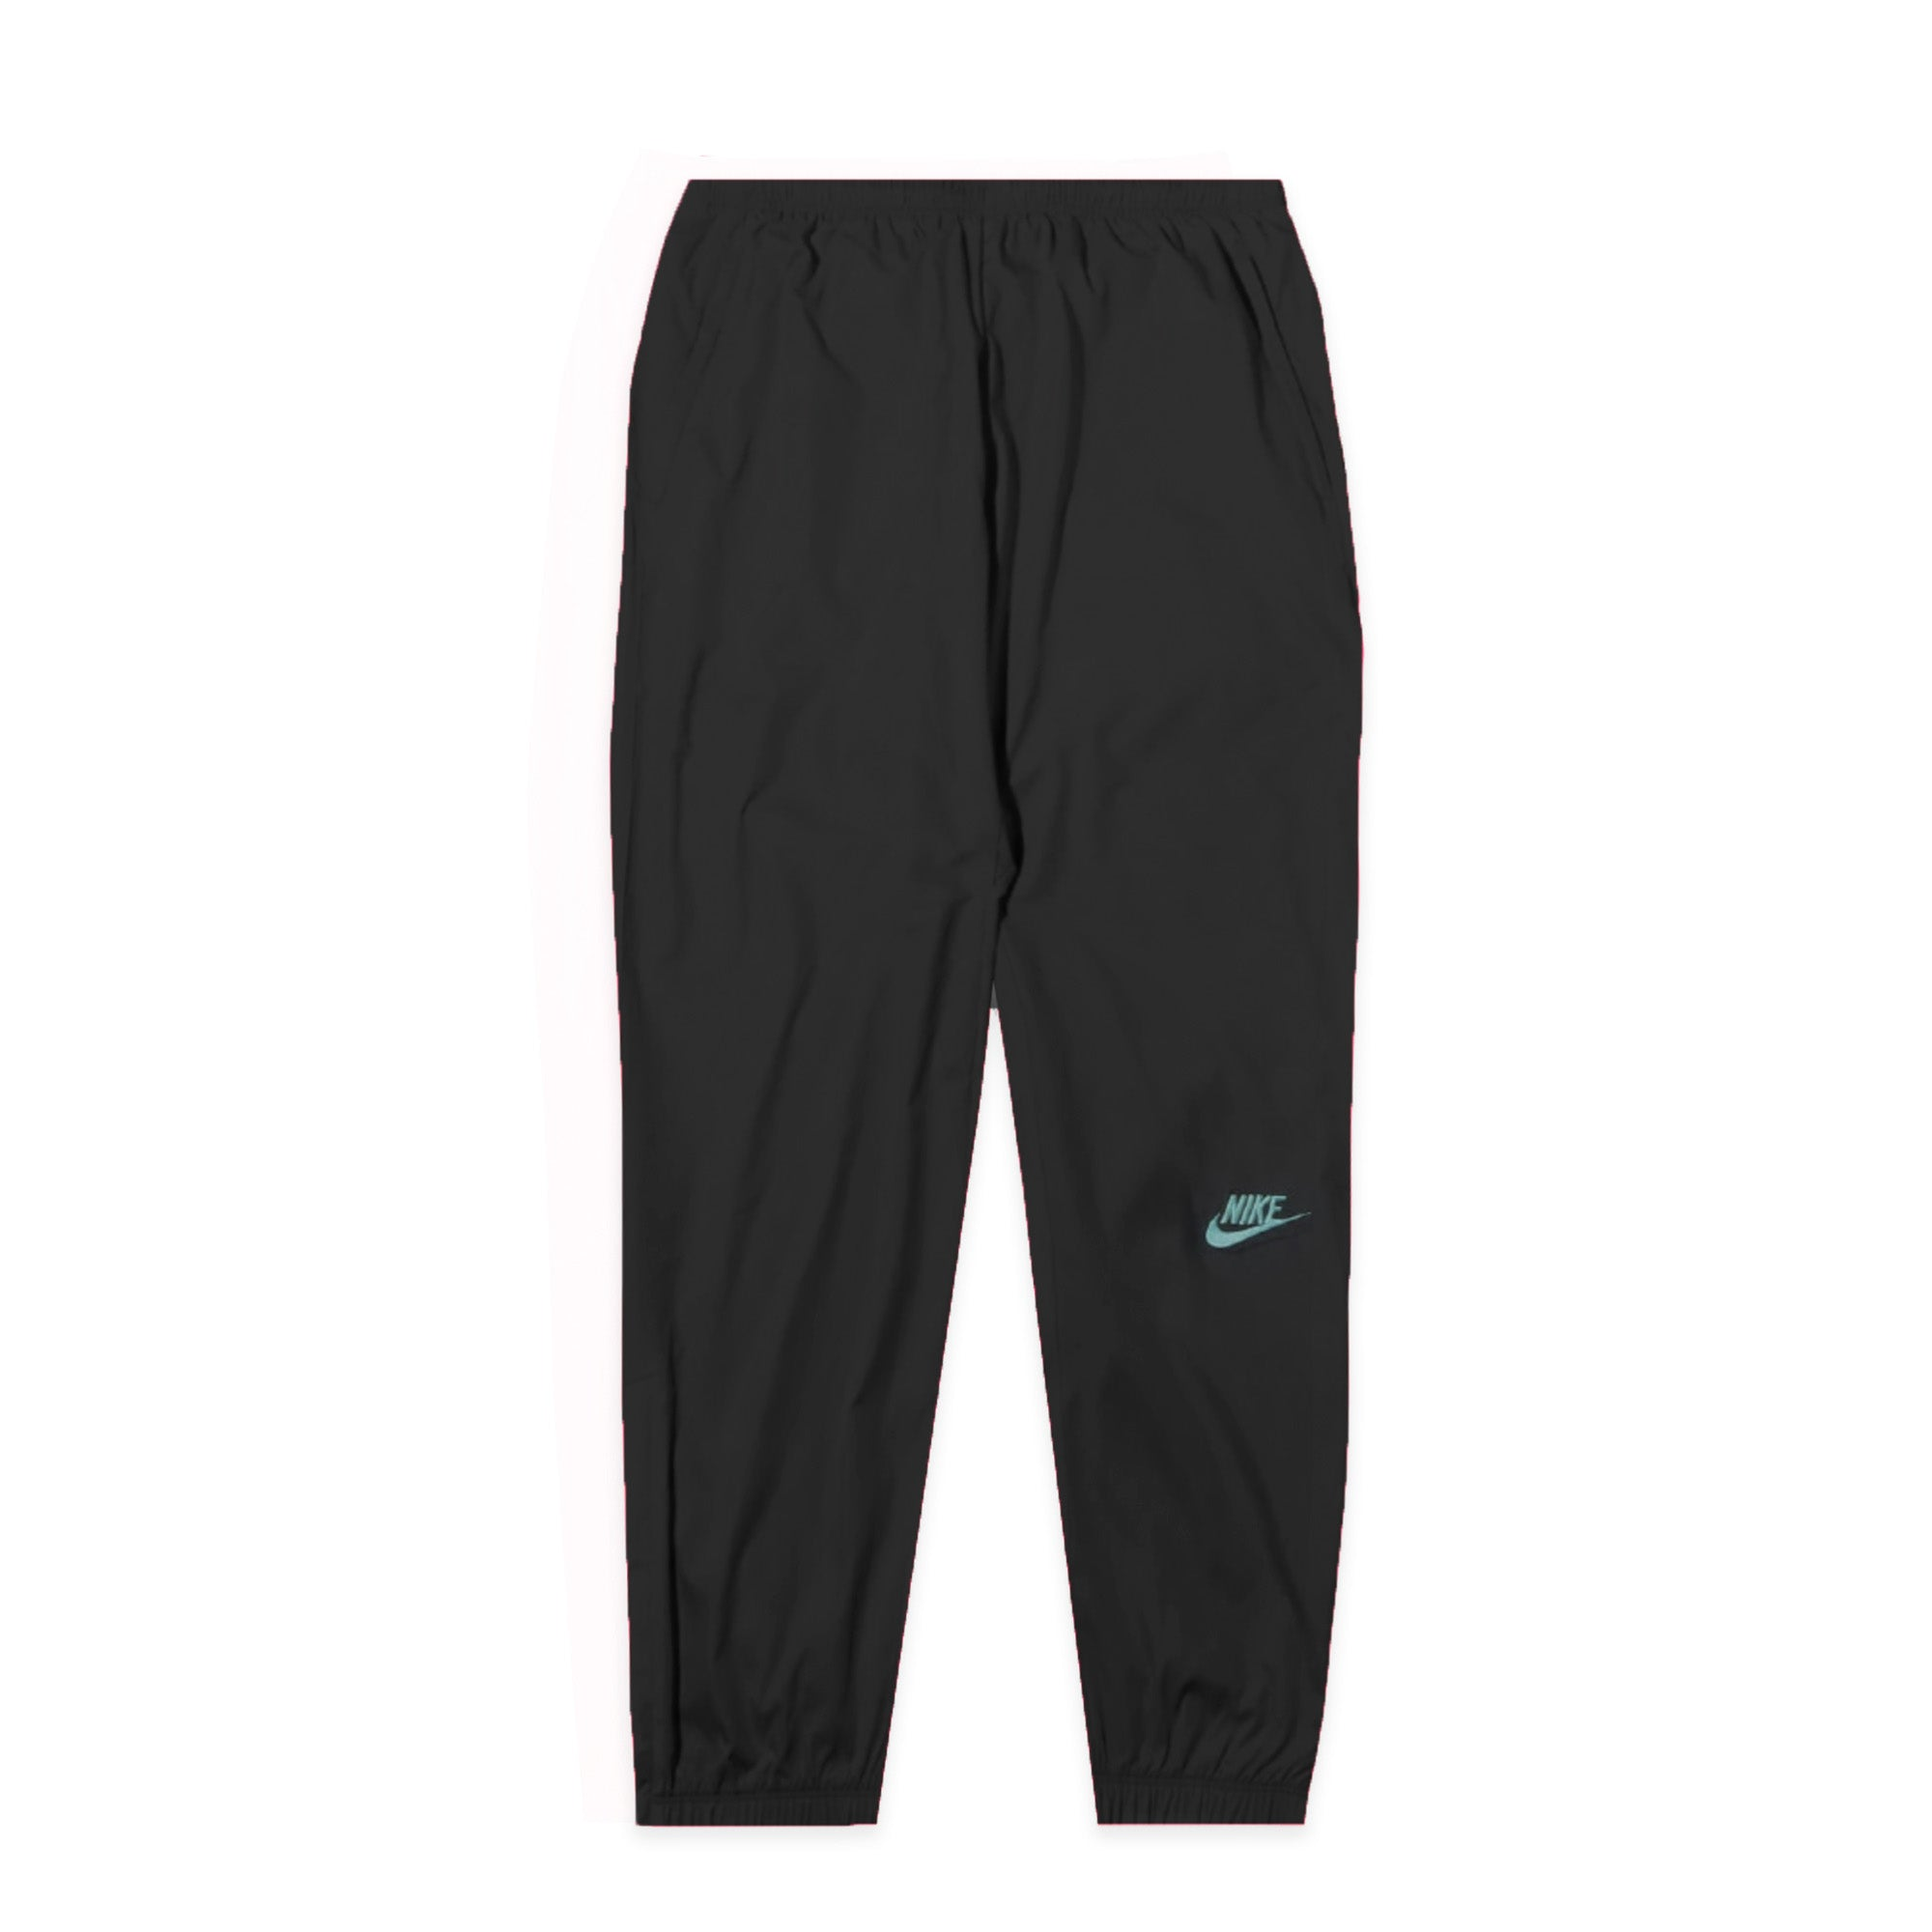 separation shoes aec1a 9a031 Nike Atmos NRG CU Vintage Patchwork Track Pant  CD6133-011